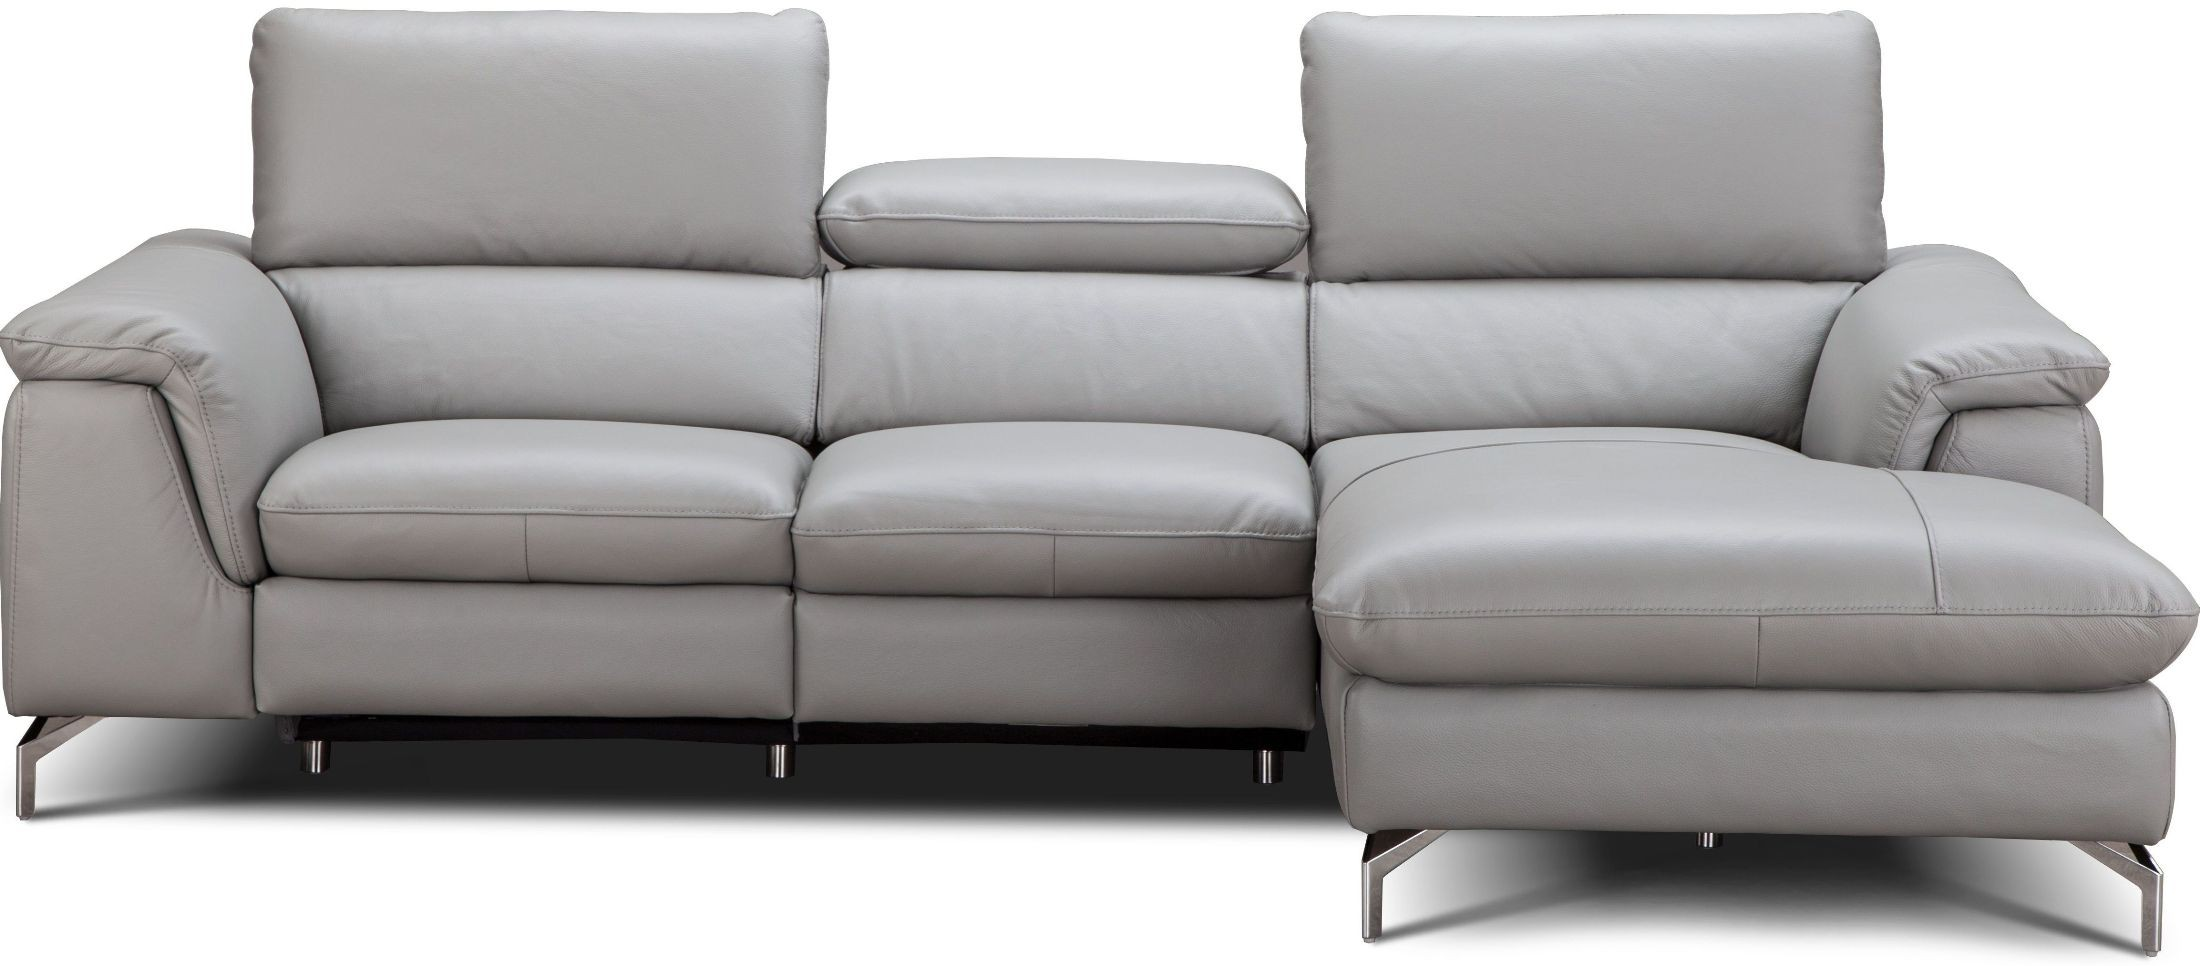 light gray leather reclining sofa large oval shaped serena premium power raf